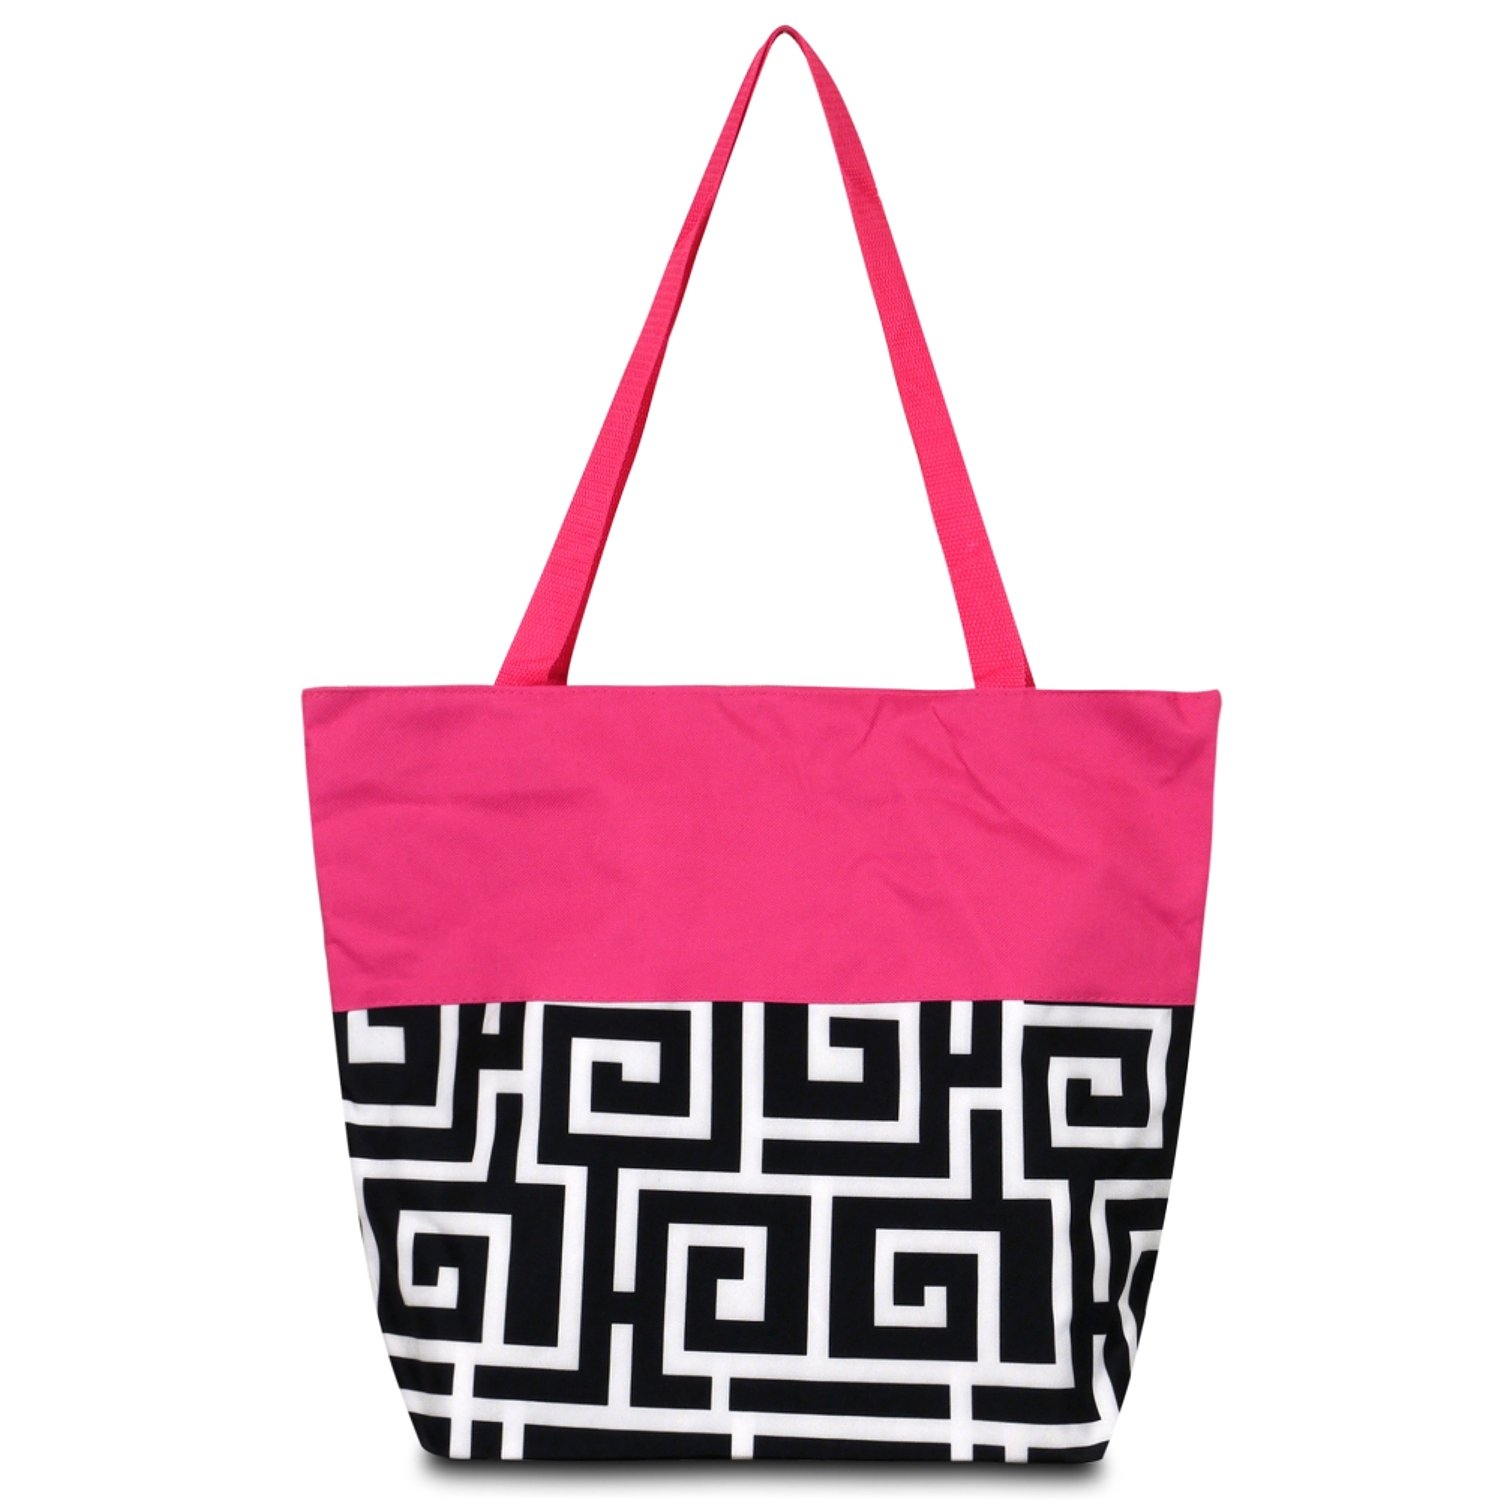 zodaca Large All Purpose Travel Toteバッグ B073QHLRG6  Black Greek Key with Pink Trim